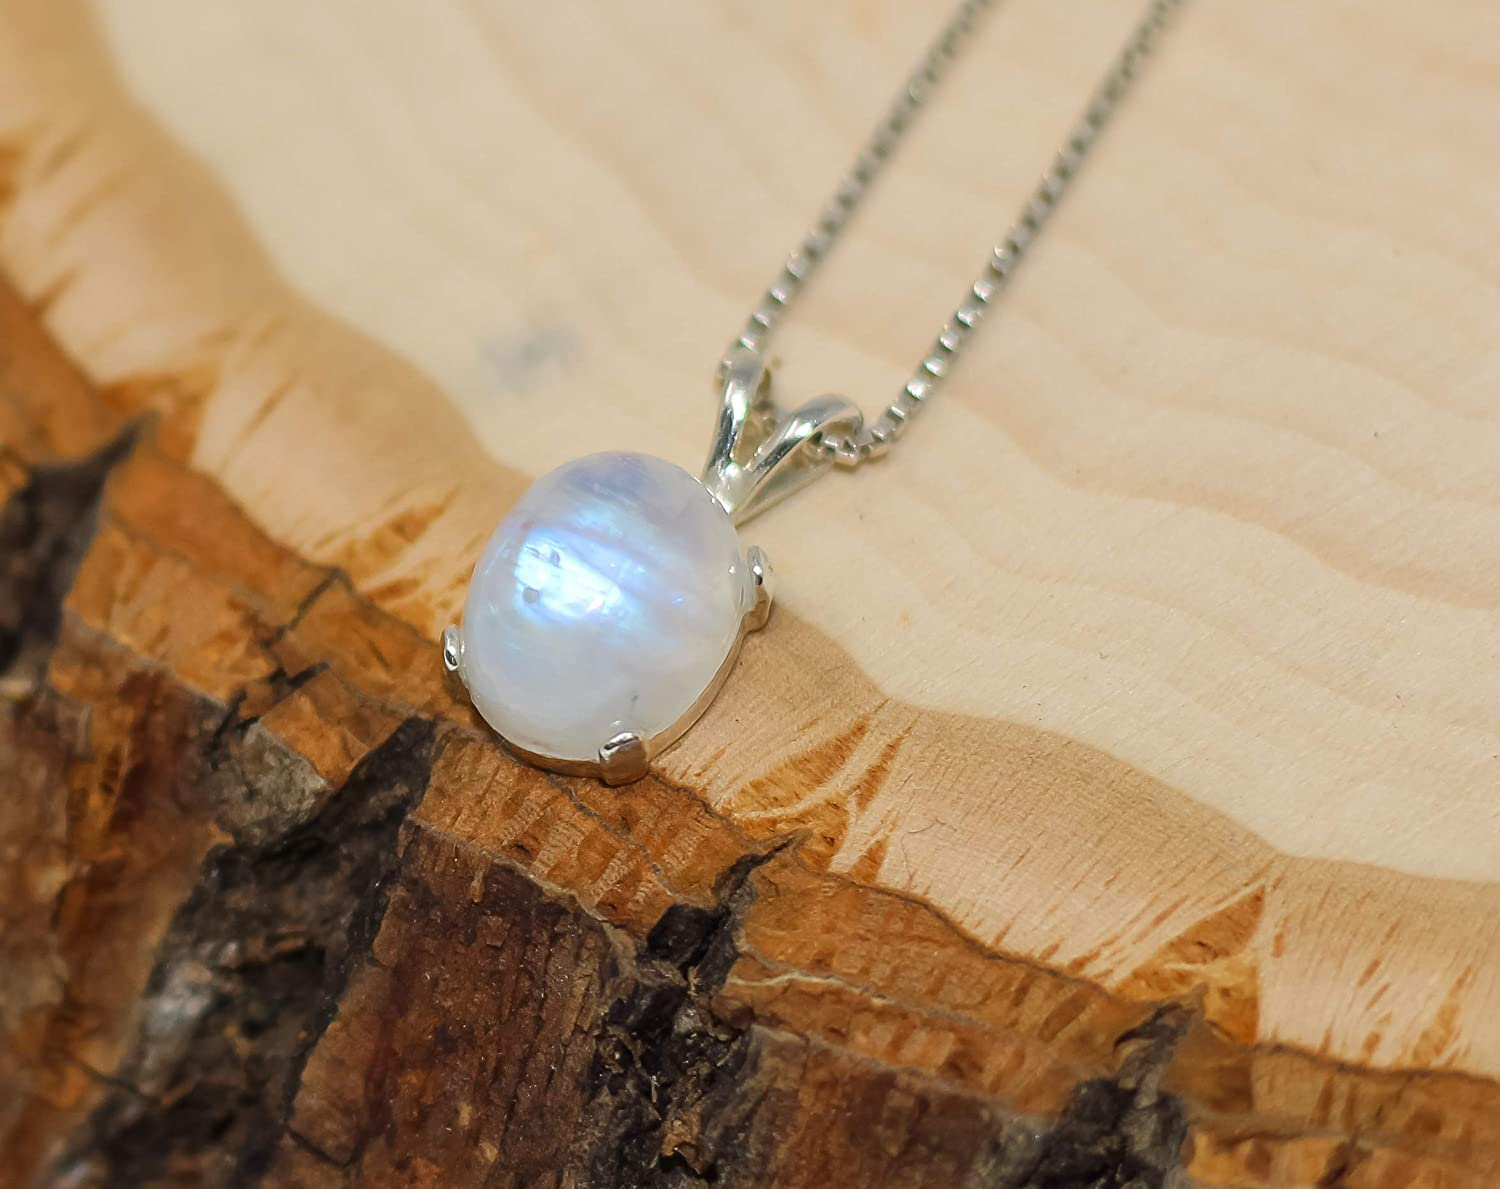 18 Wedding Gift Necklace Size Handamade 925 Sterling Silver Necklace Natural Moonstone Necklace June Birthstone